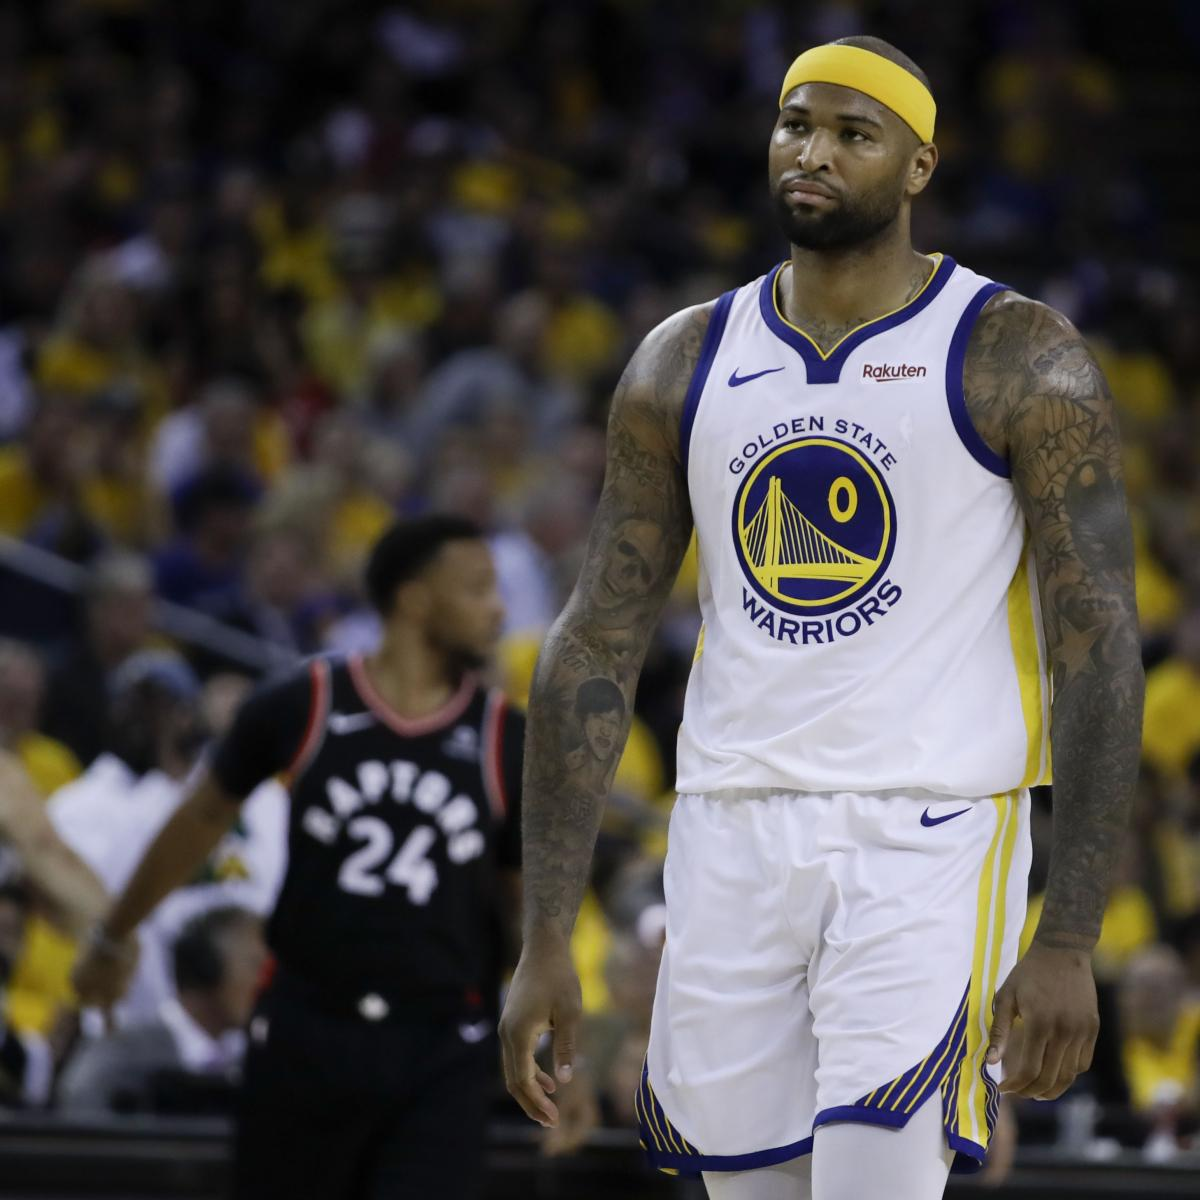 Lakers Rumors: DeMarcus Cousins Suffered Knee Injury, to Undergo Further Testing